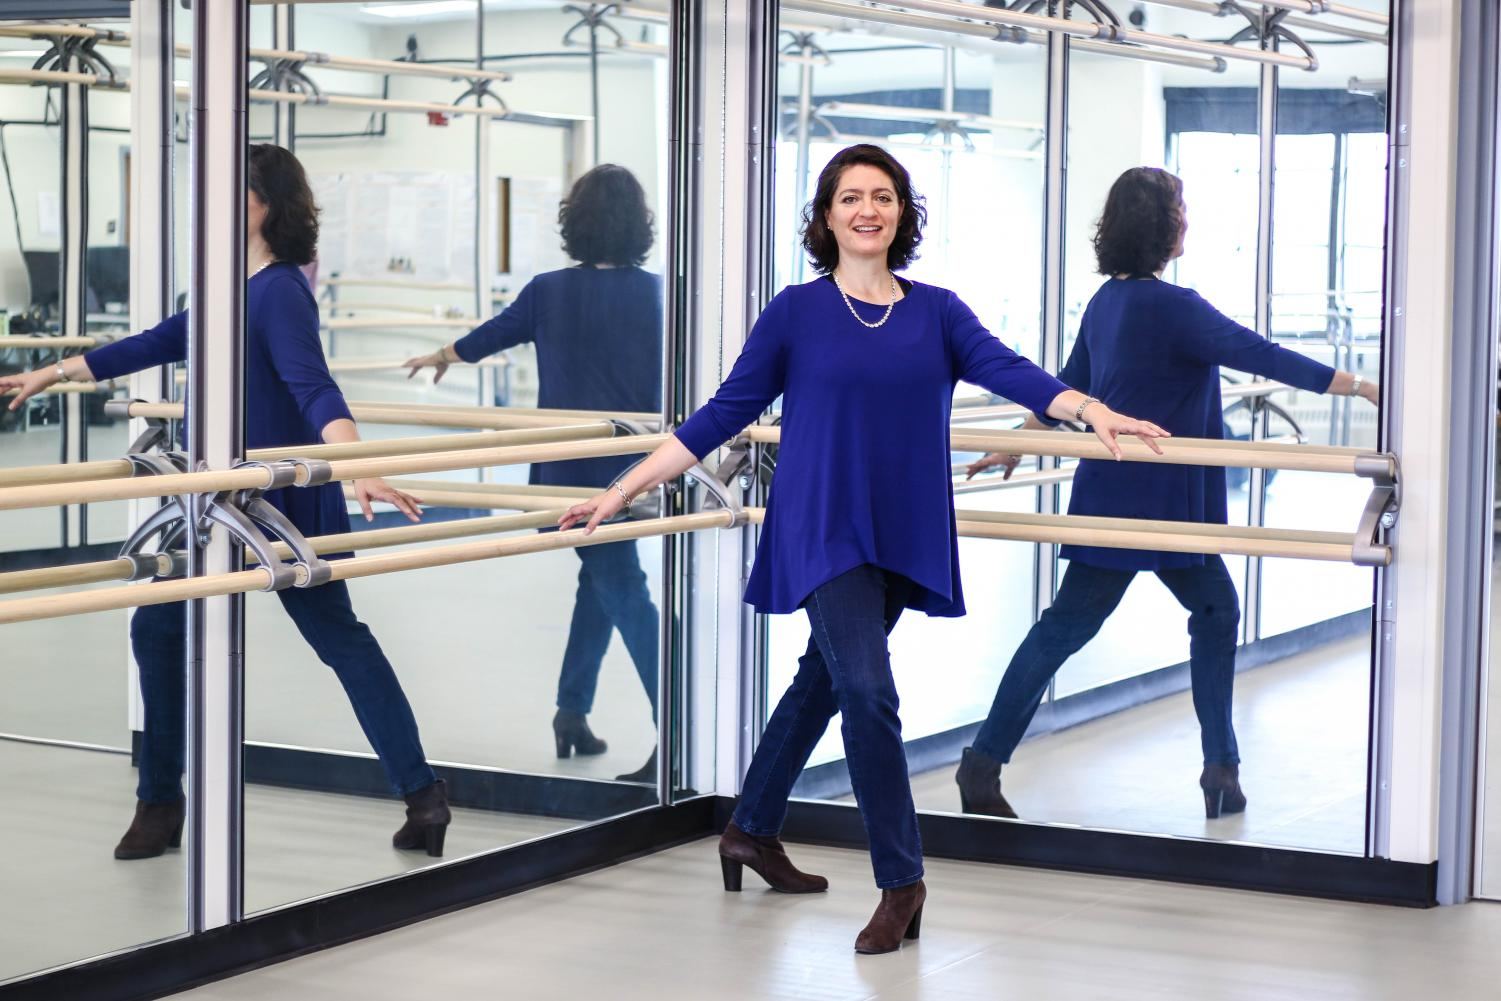 Dr. Citlali Lopez-Ortiz serves as pioneer for the study of movement therapy, specifically the effects ballet has on her students. Through her studies, Lopez-Ortiz has seen 50 to 60 percent of overall improvement with her subjects in her multiple sclerosis study, crediting it to the combination of motor learning and movement meditation.